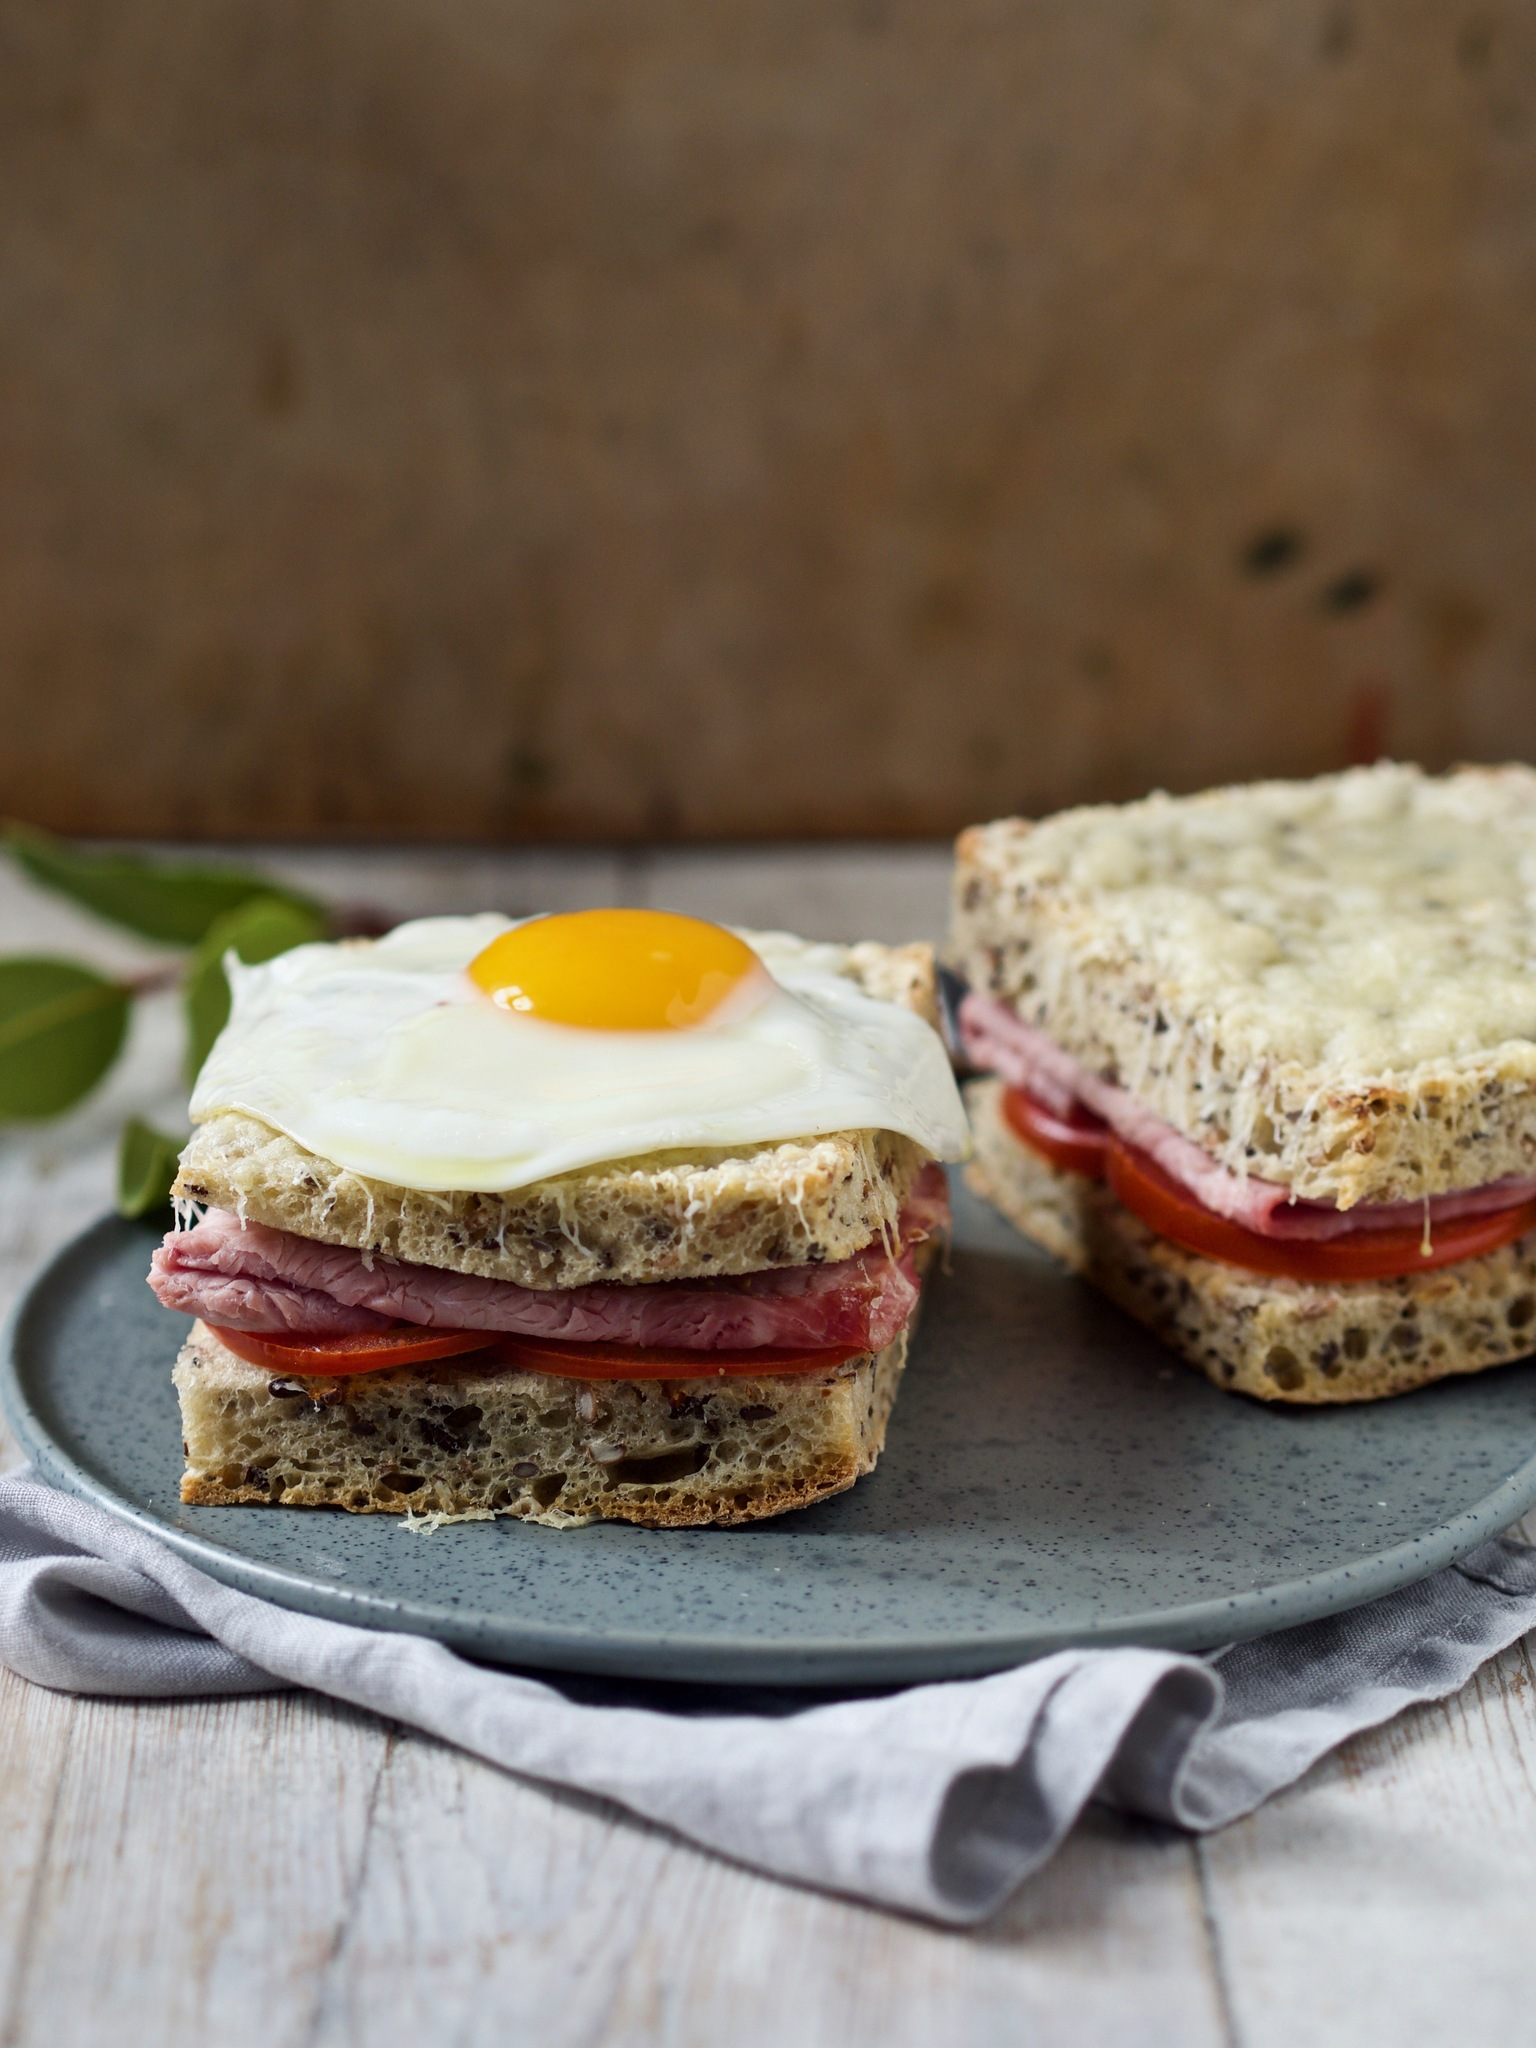 Croque monsieur og croque madame